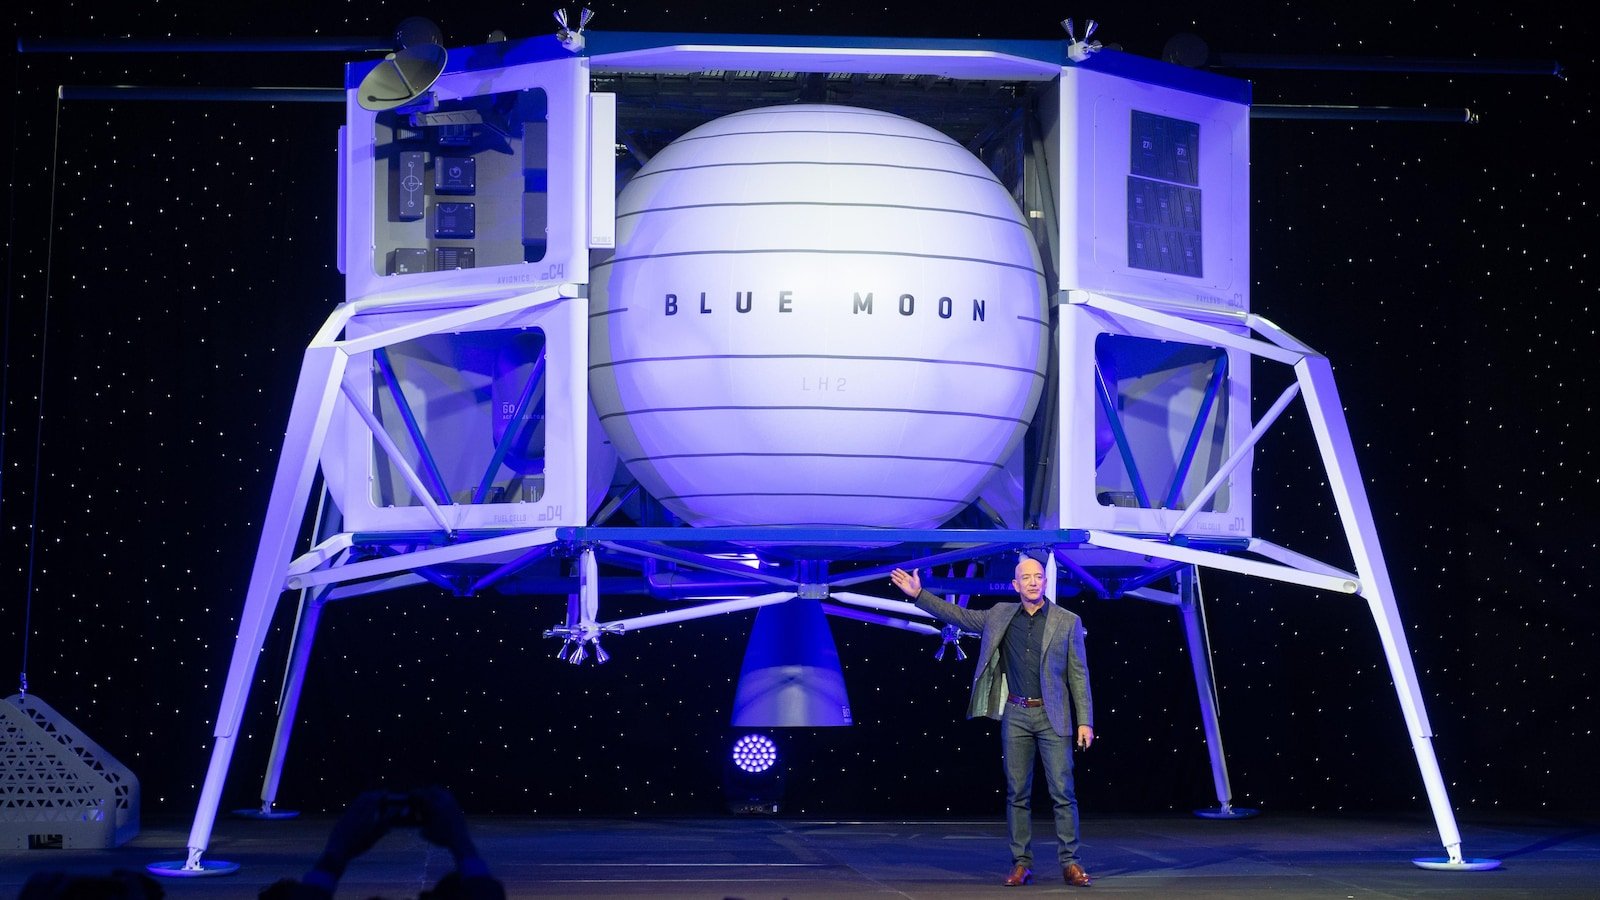 LE CAPITAL À L'ASSAUT DU CIEL Jeff-bezos-blue-moon-alunisseur